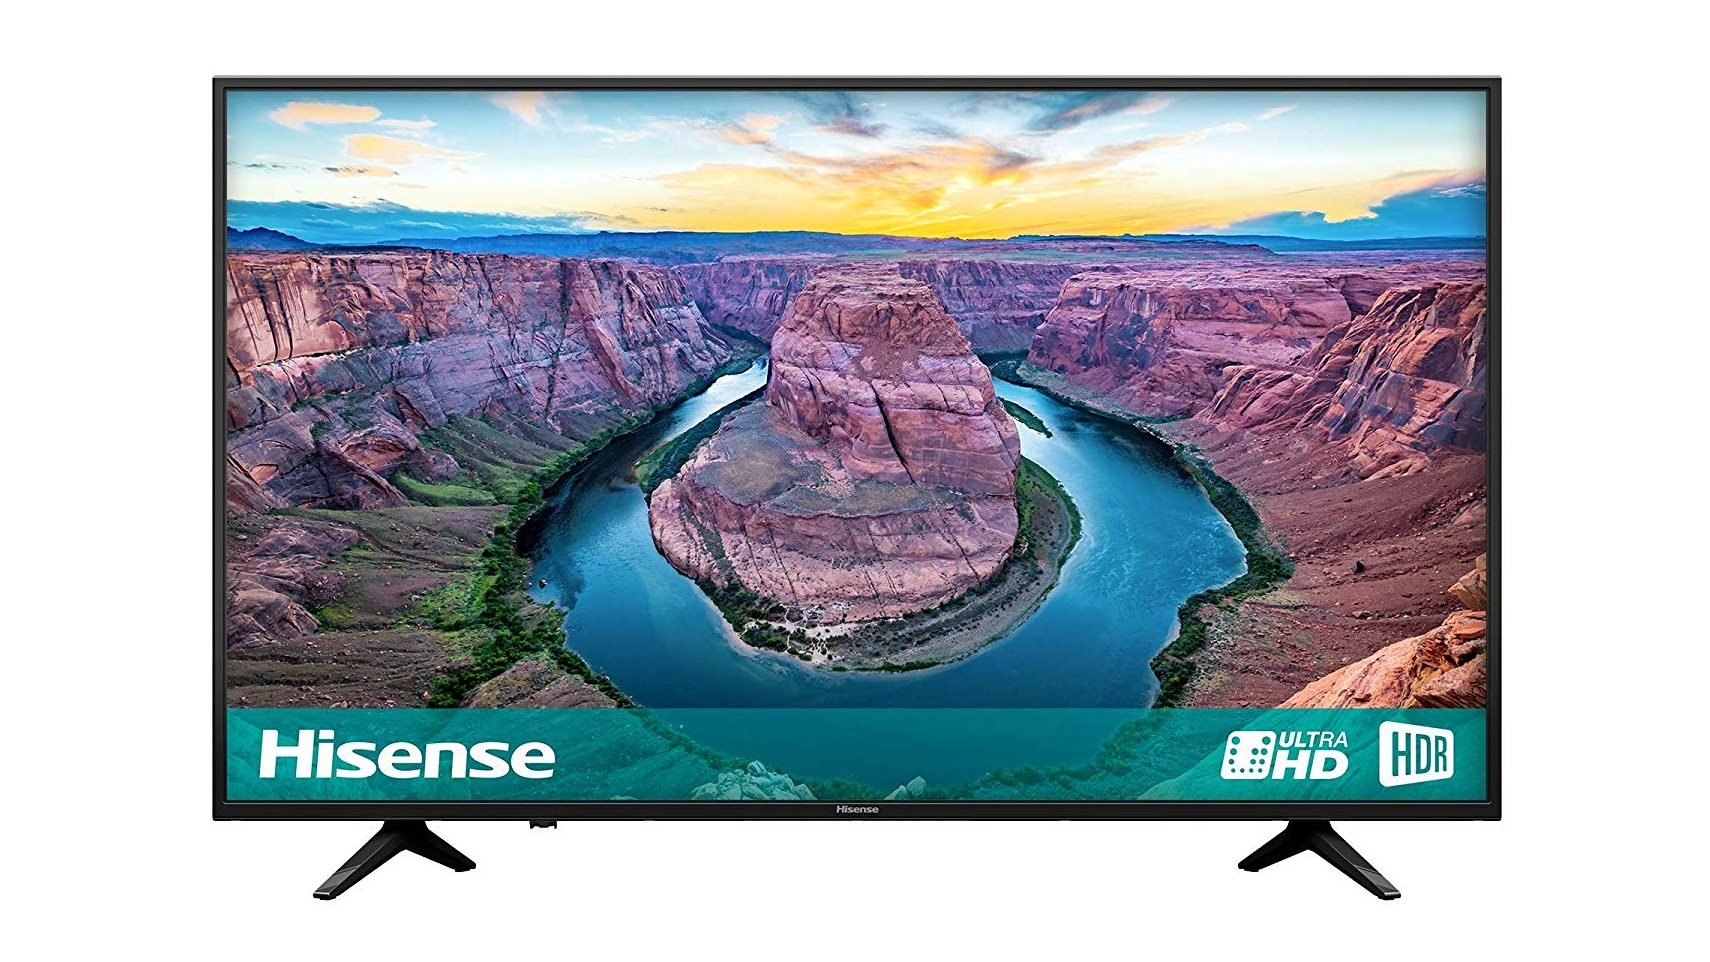 Hisense H43AE6100UK review: Fancy a 43in 4K TV for under £300